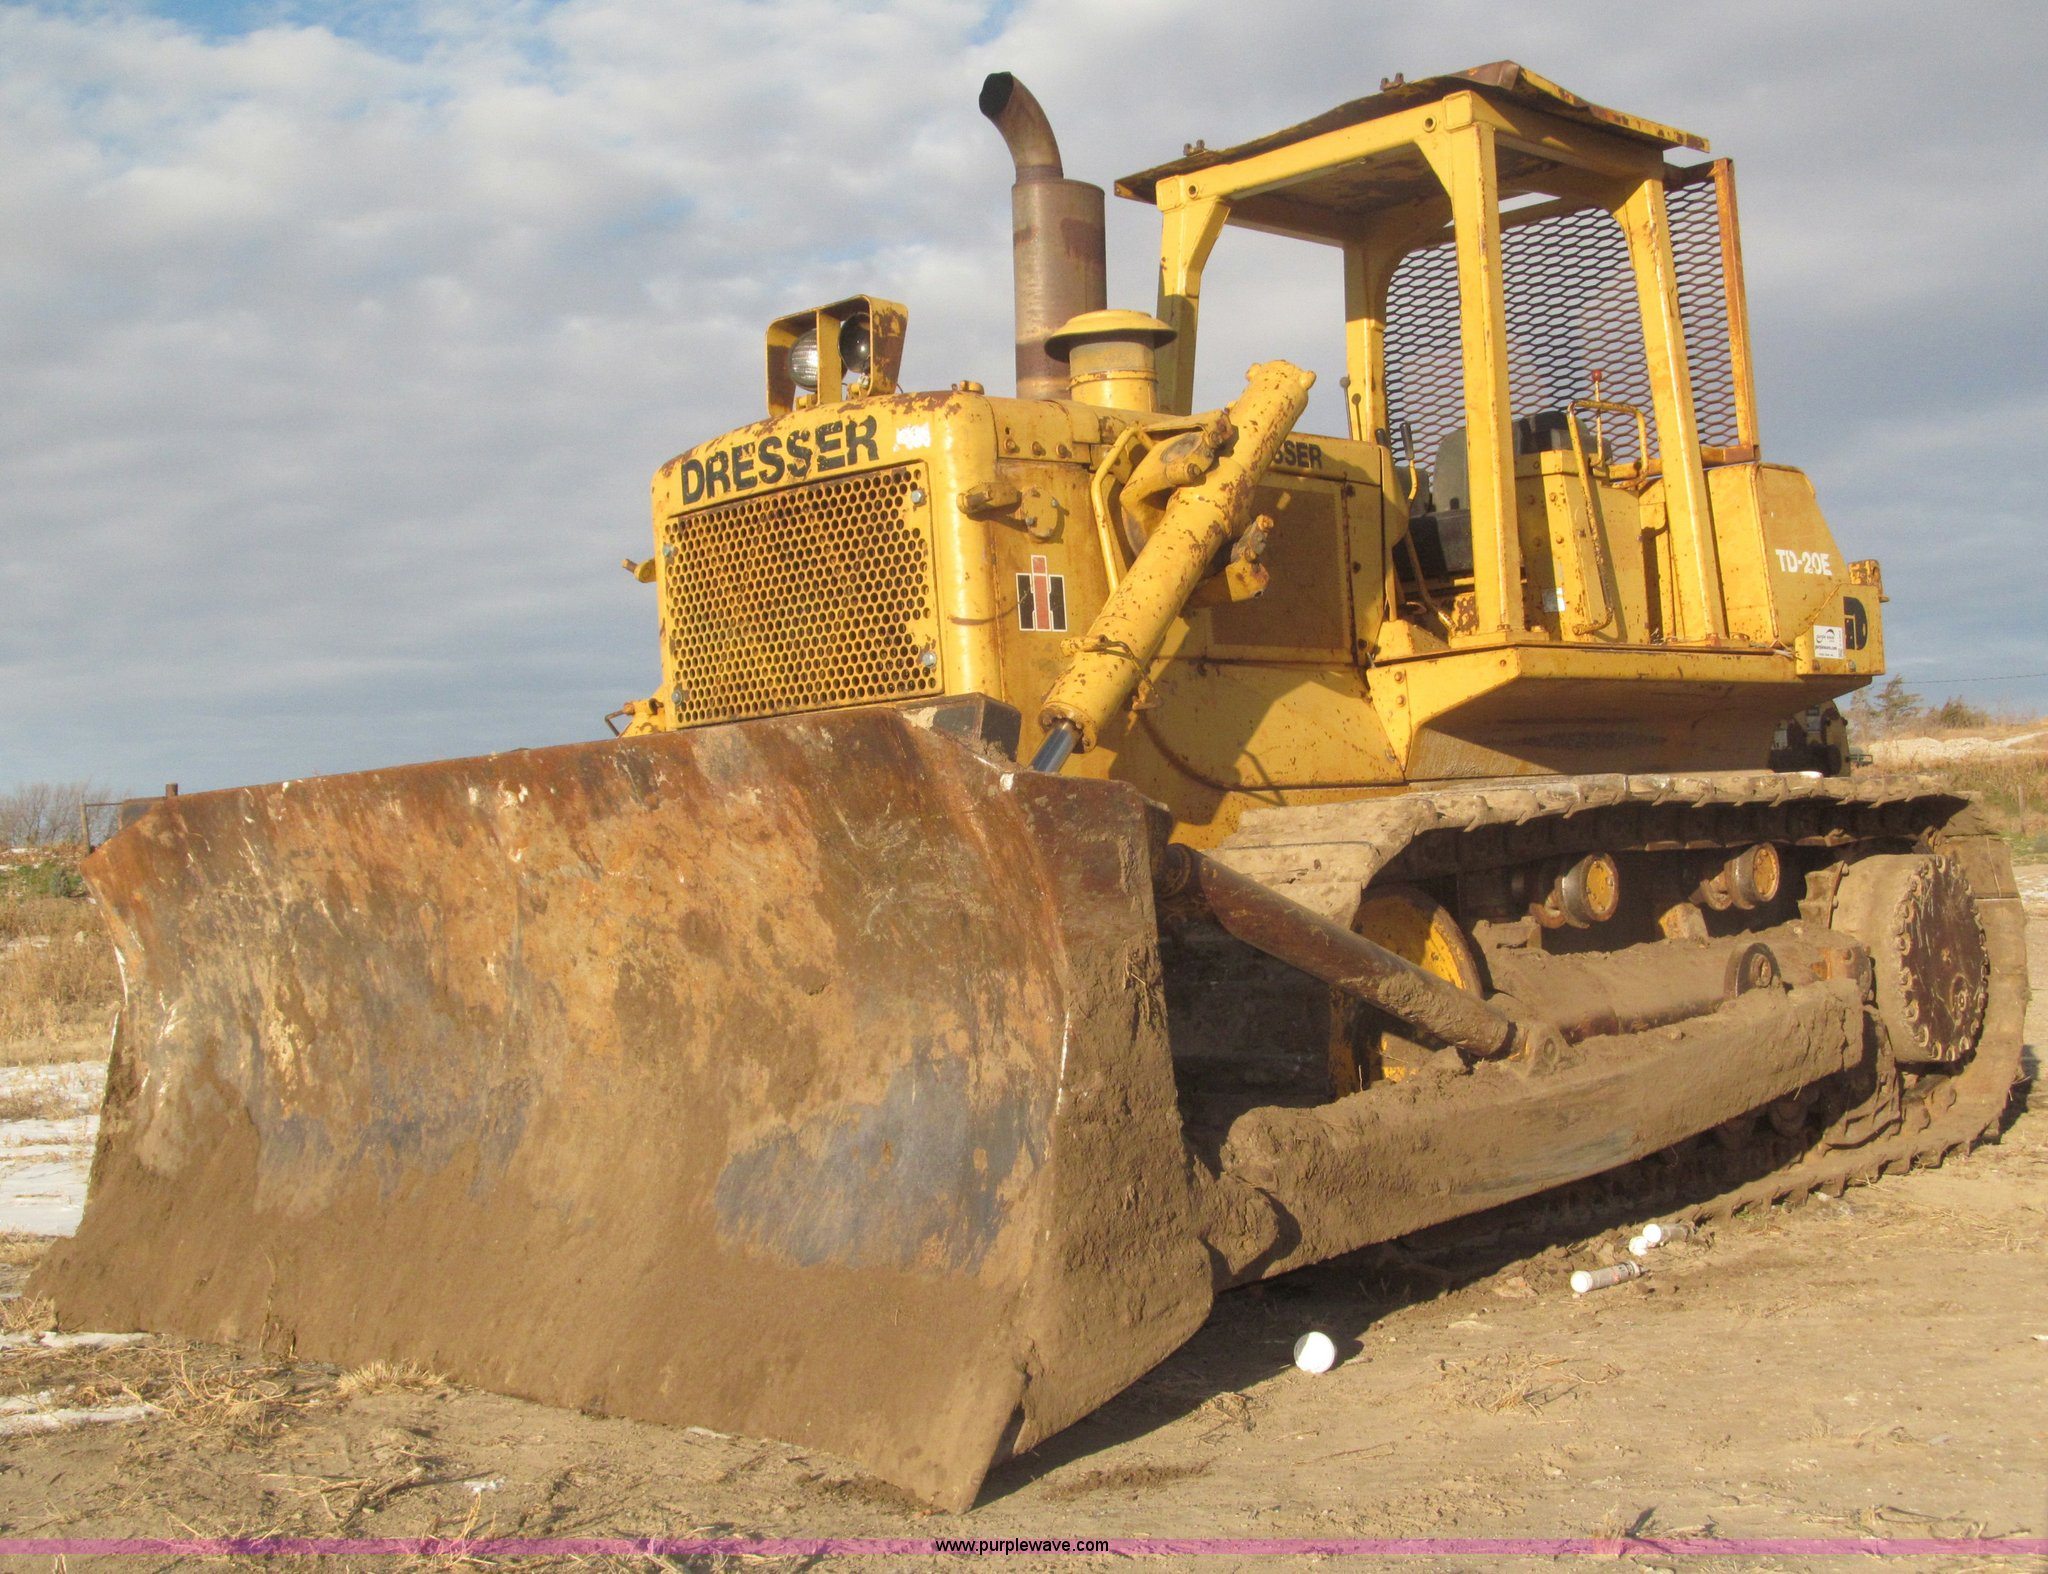 1983 International Dresser TD20E dozer | Item F7203 | SOLD!